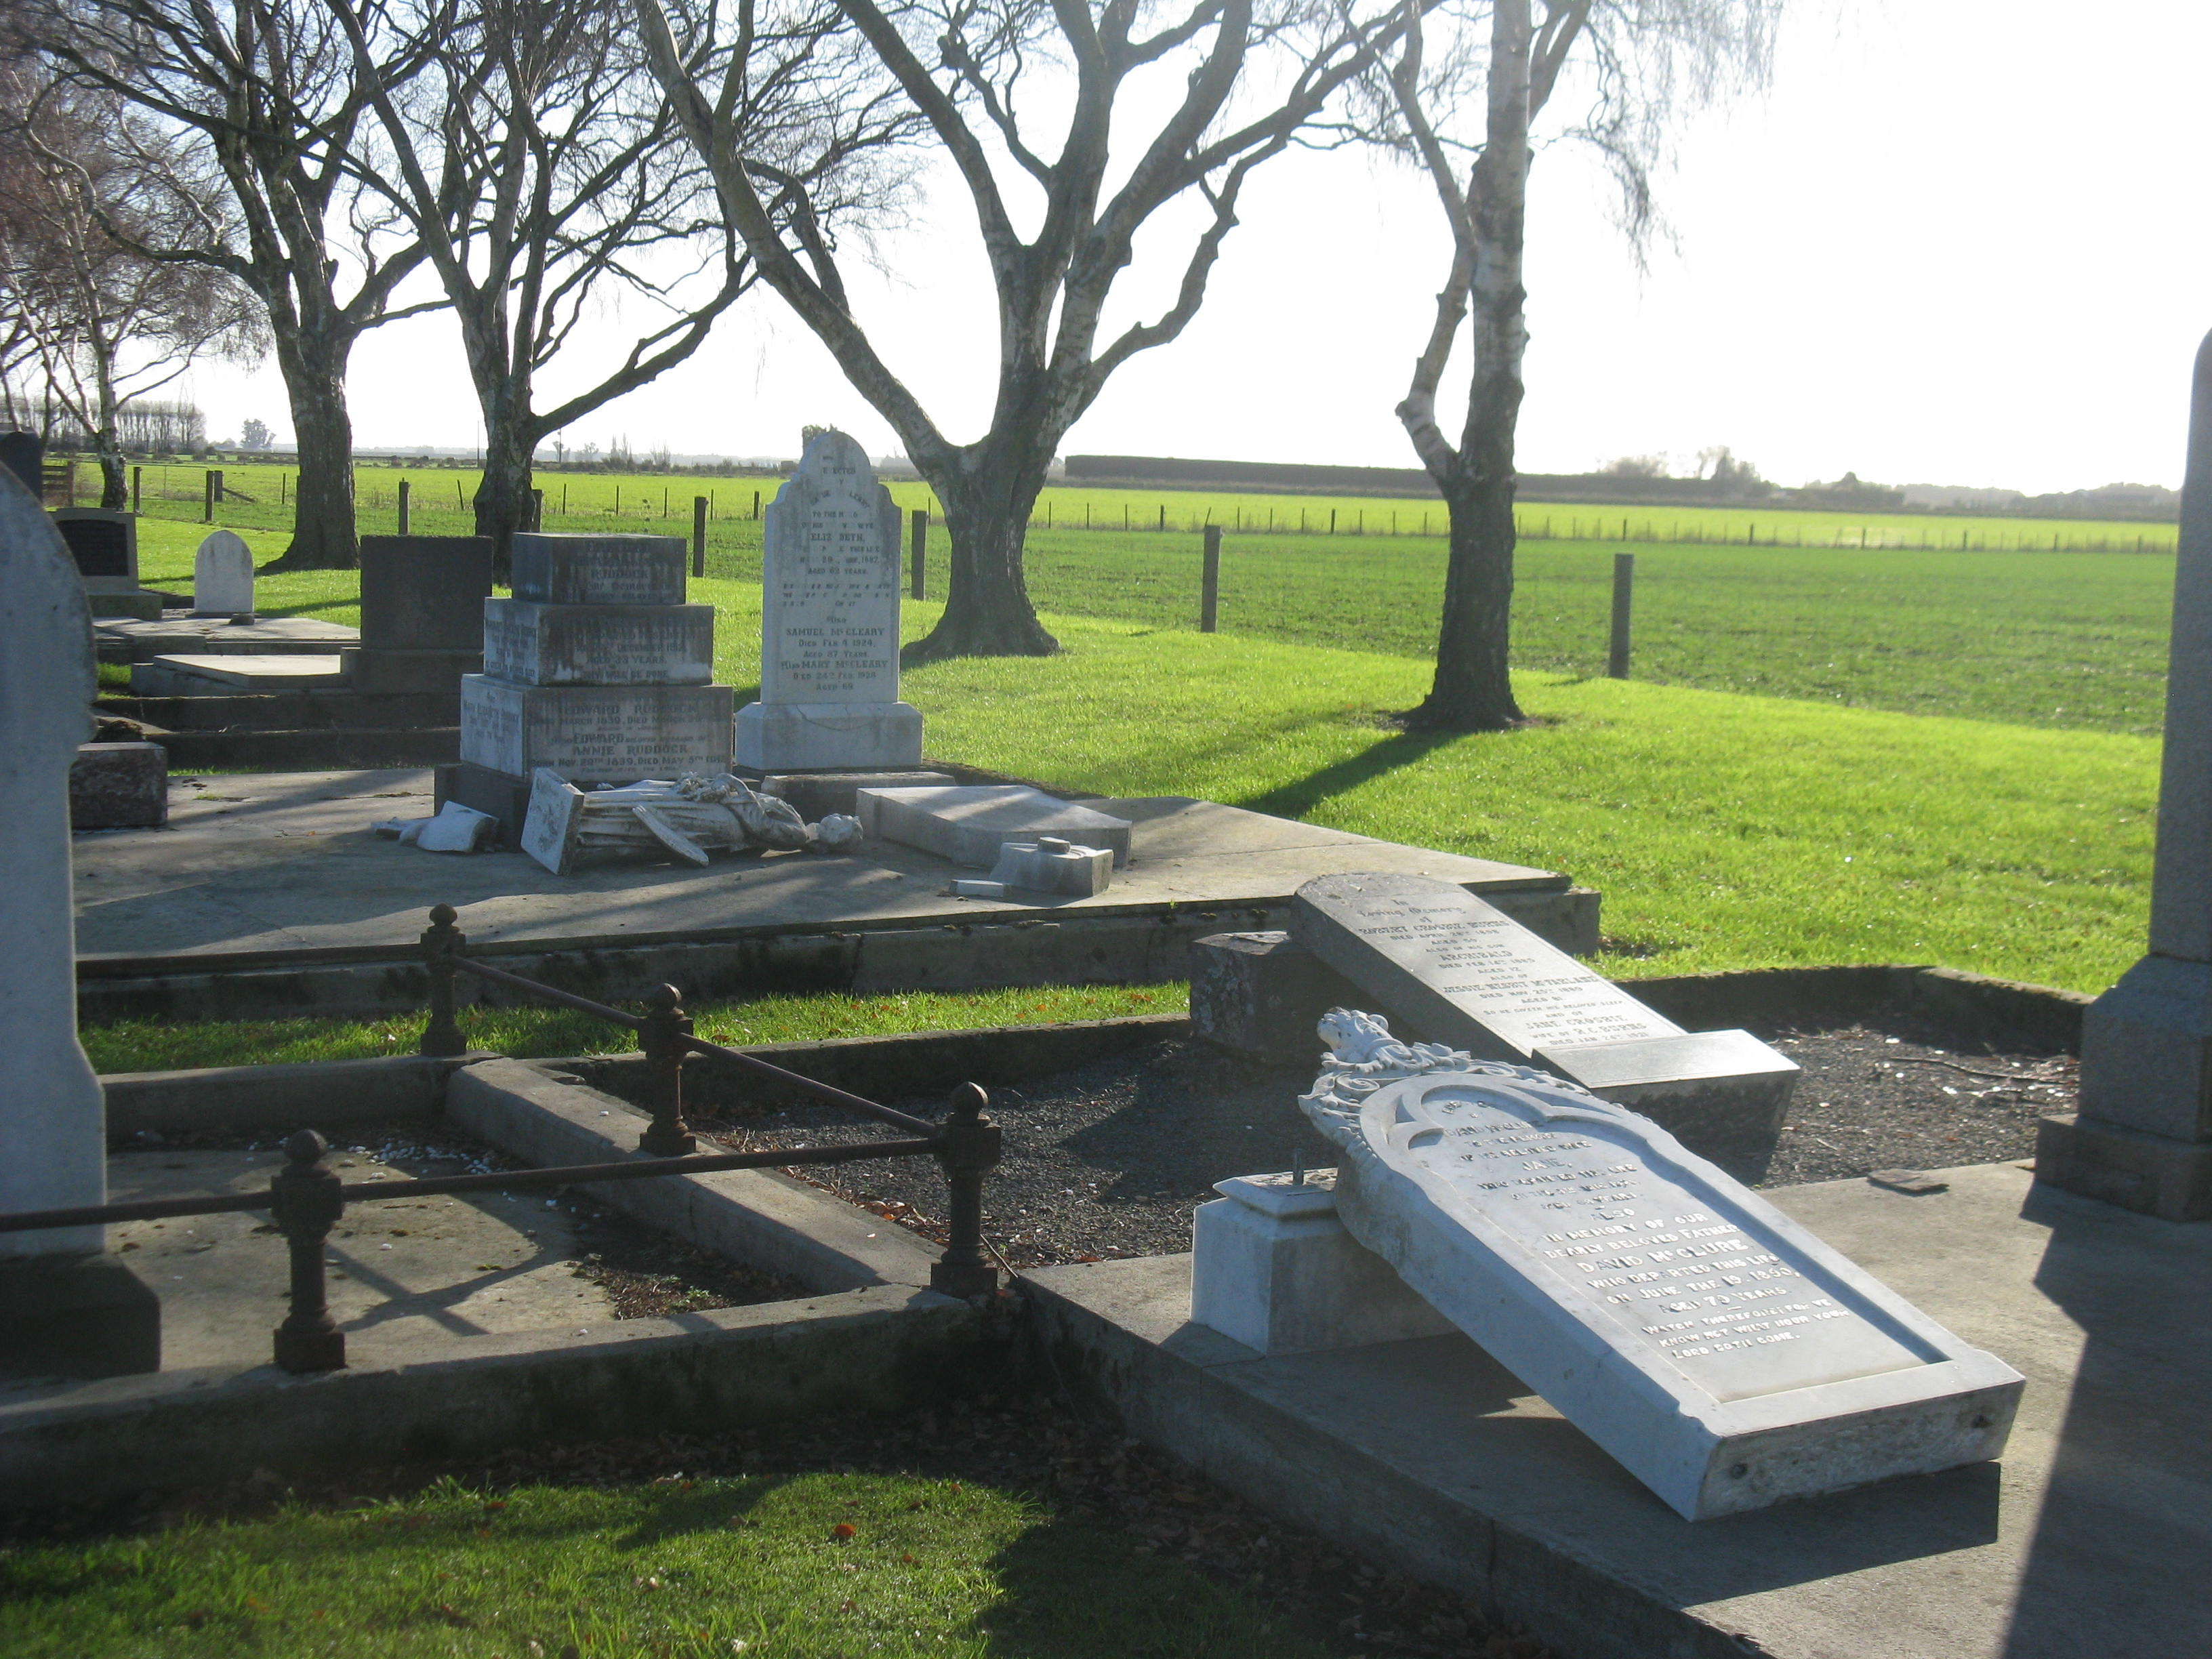 Stone Cemetery Columns : First look at damage in ellesmere public cemetery